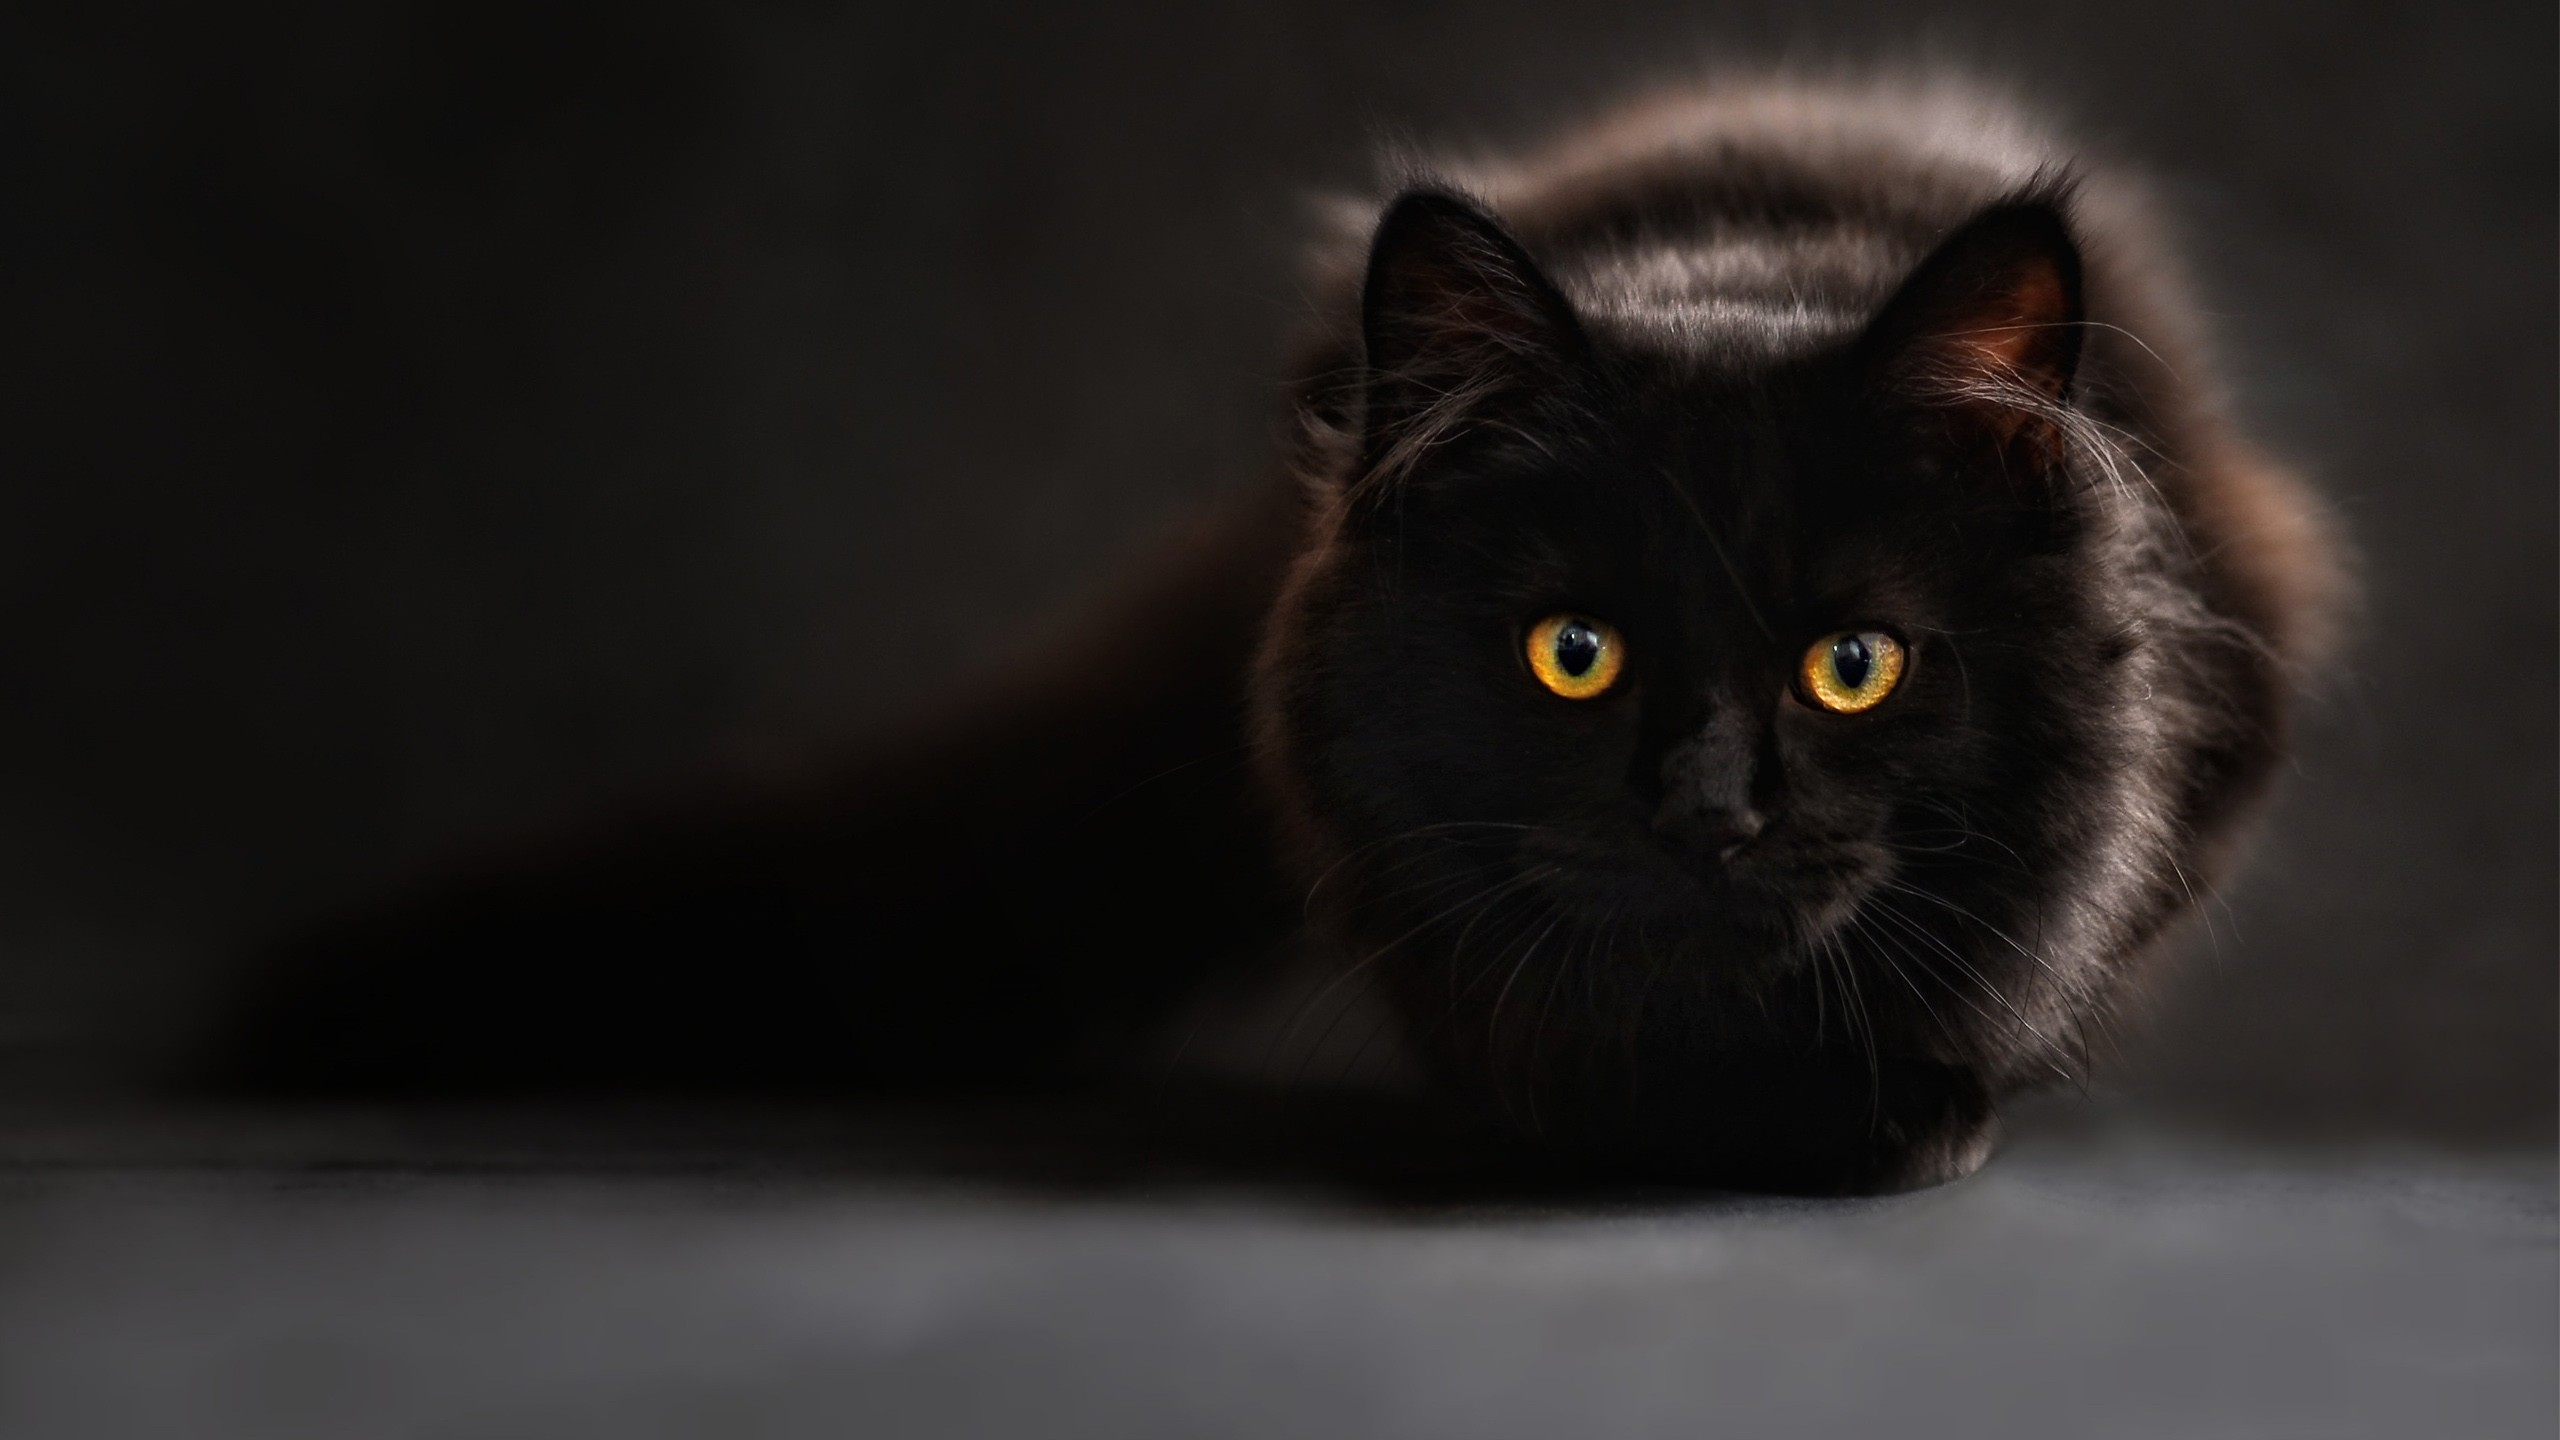 Black Cat Wallpapers .